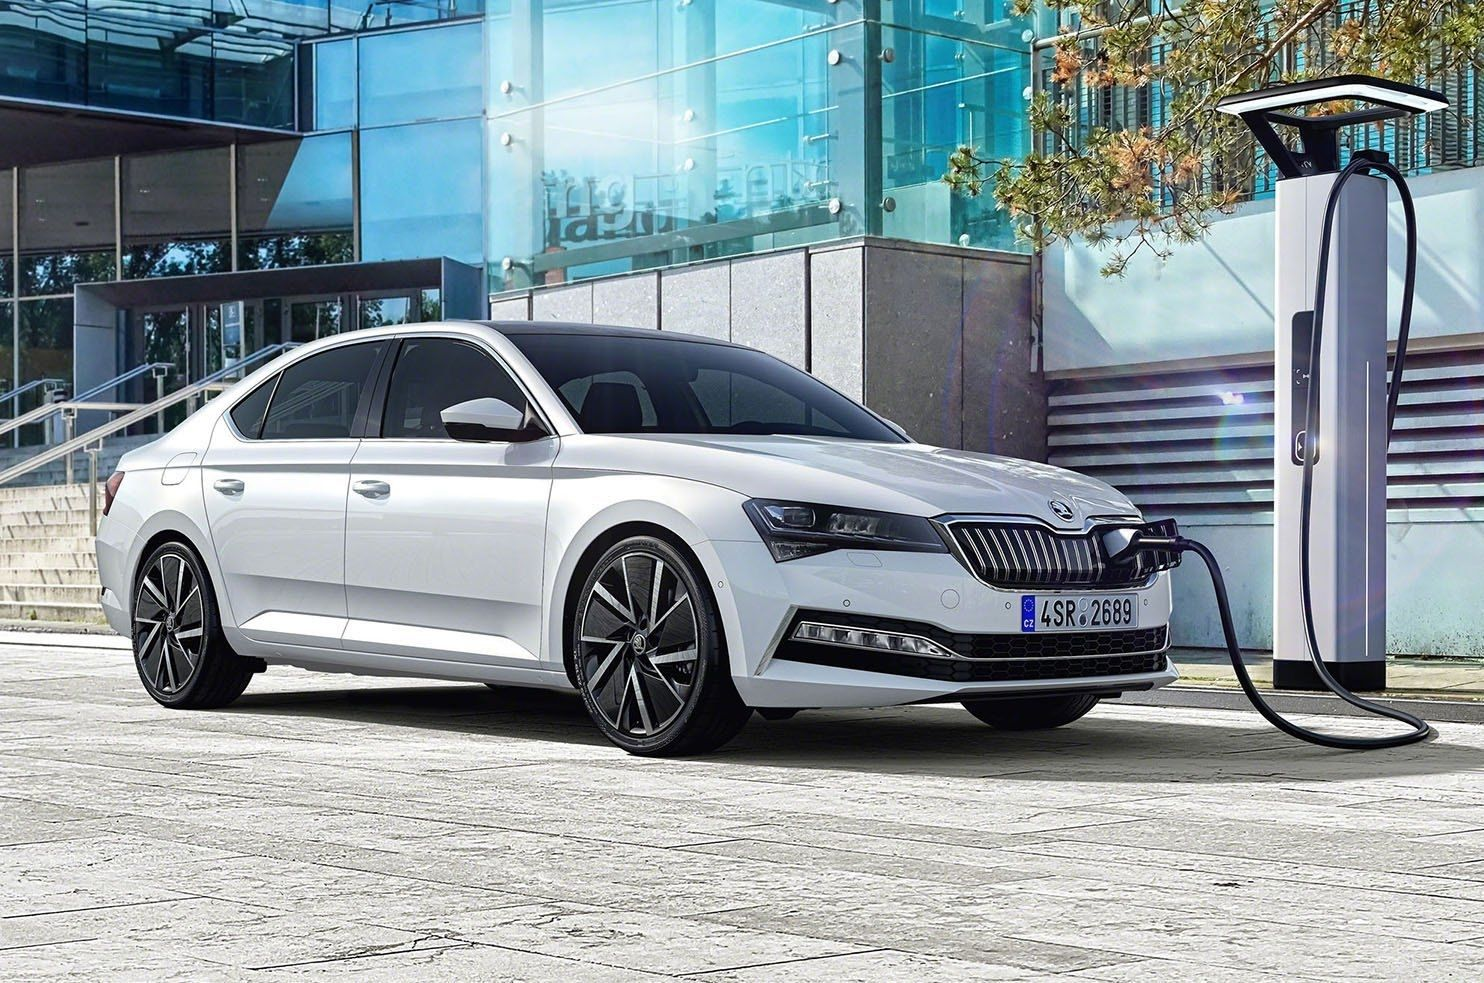 Top Skoda Octavia 2020 Price Price Design And Review Skoda Superb Skoda Skoda Octavia